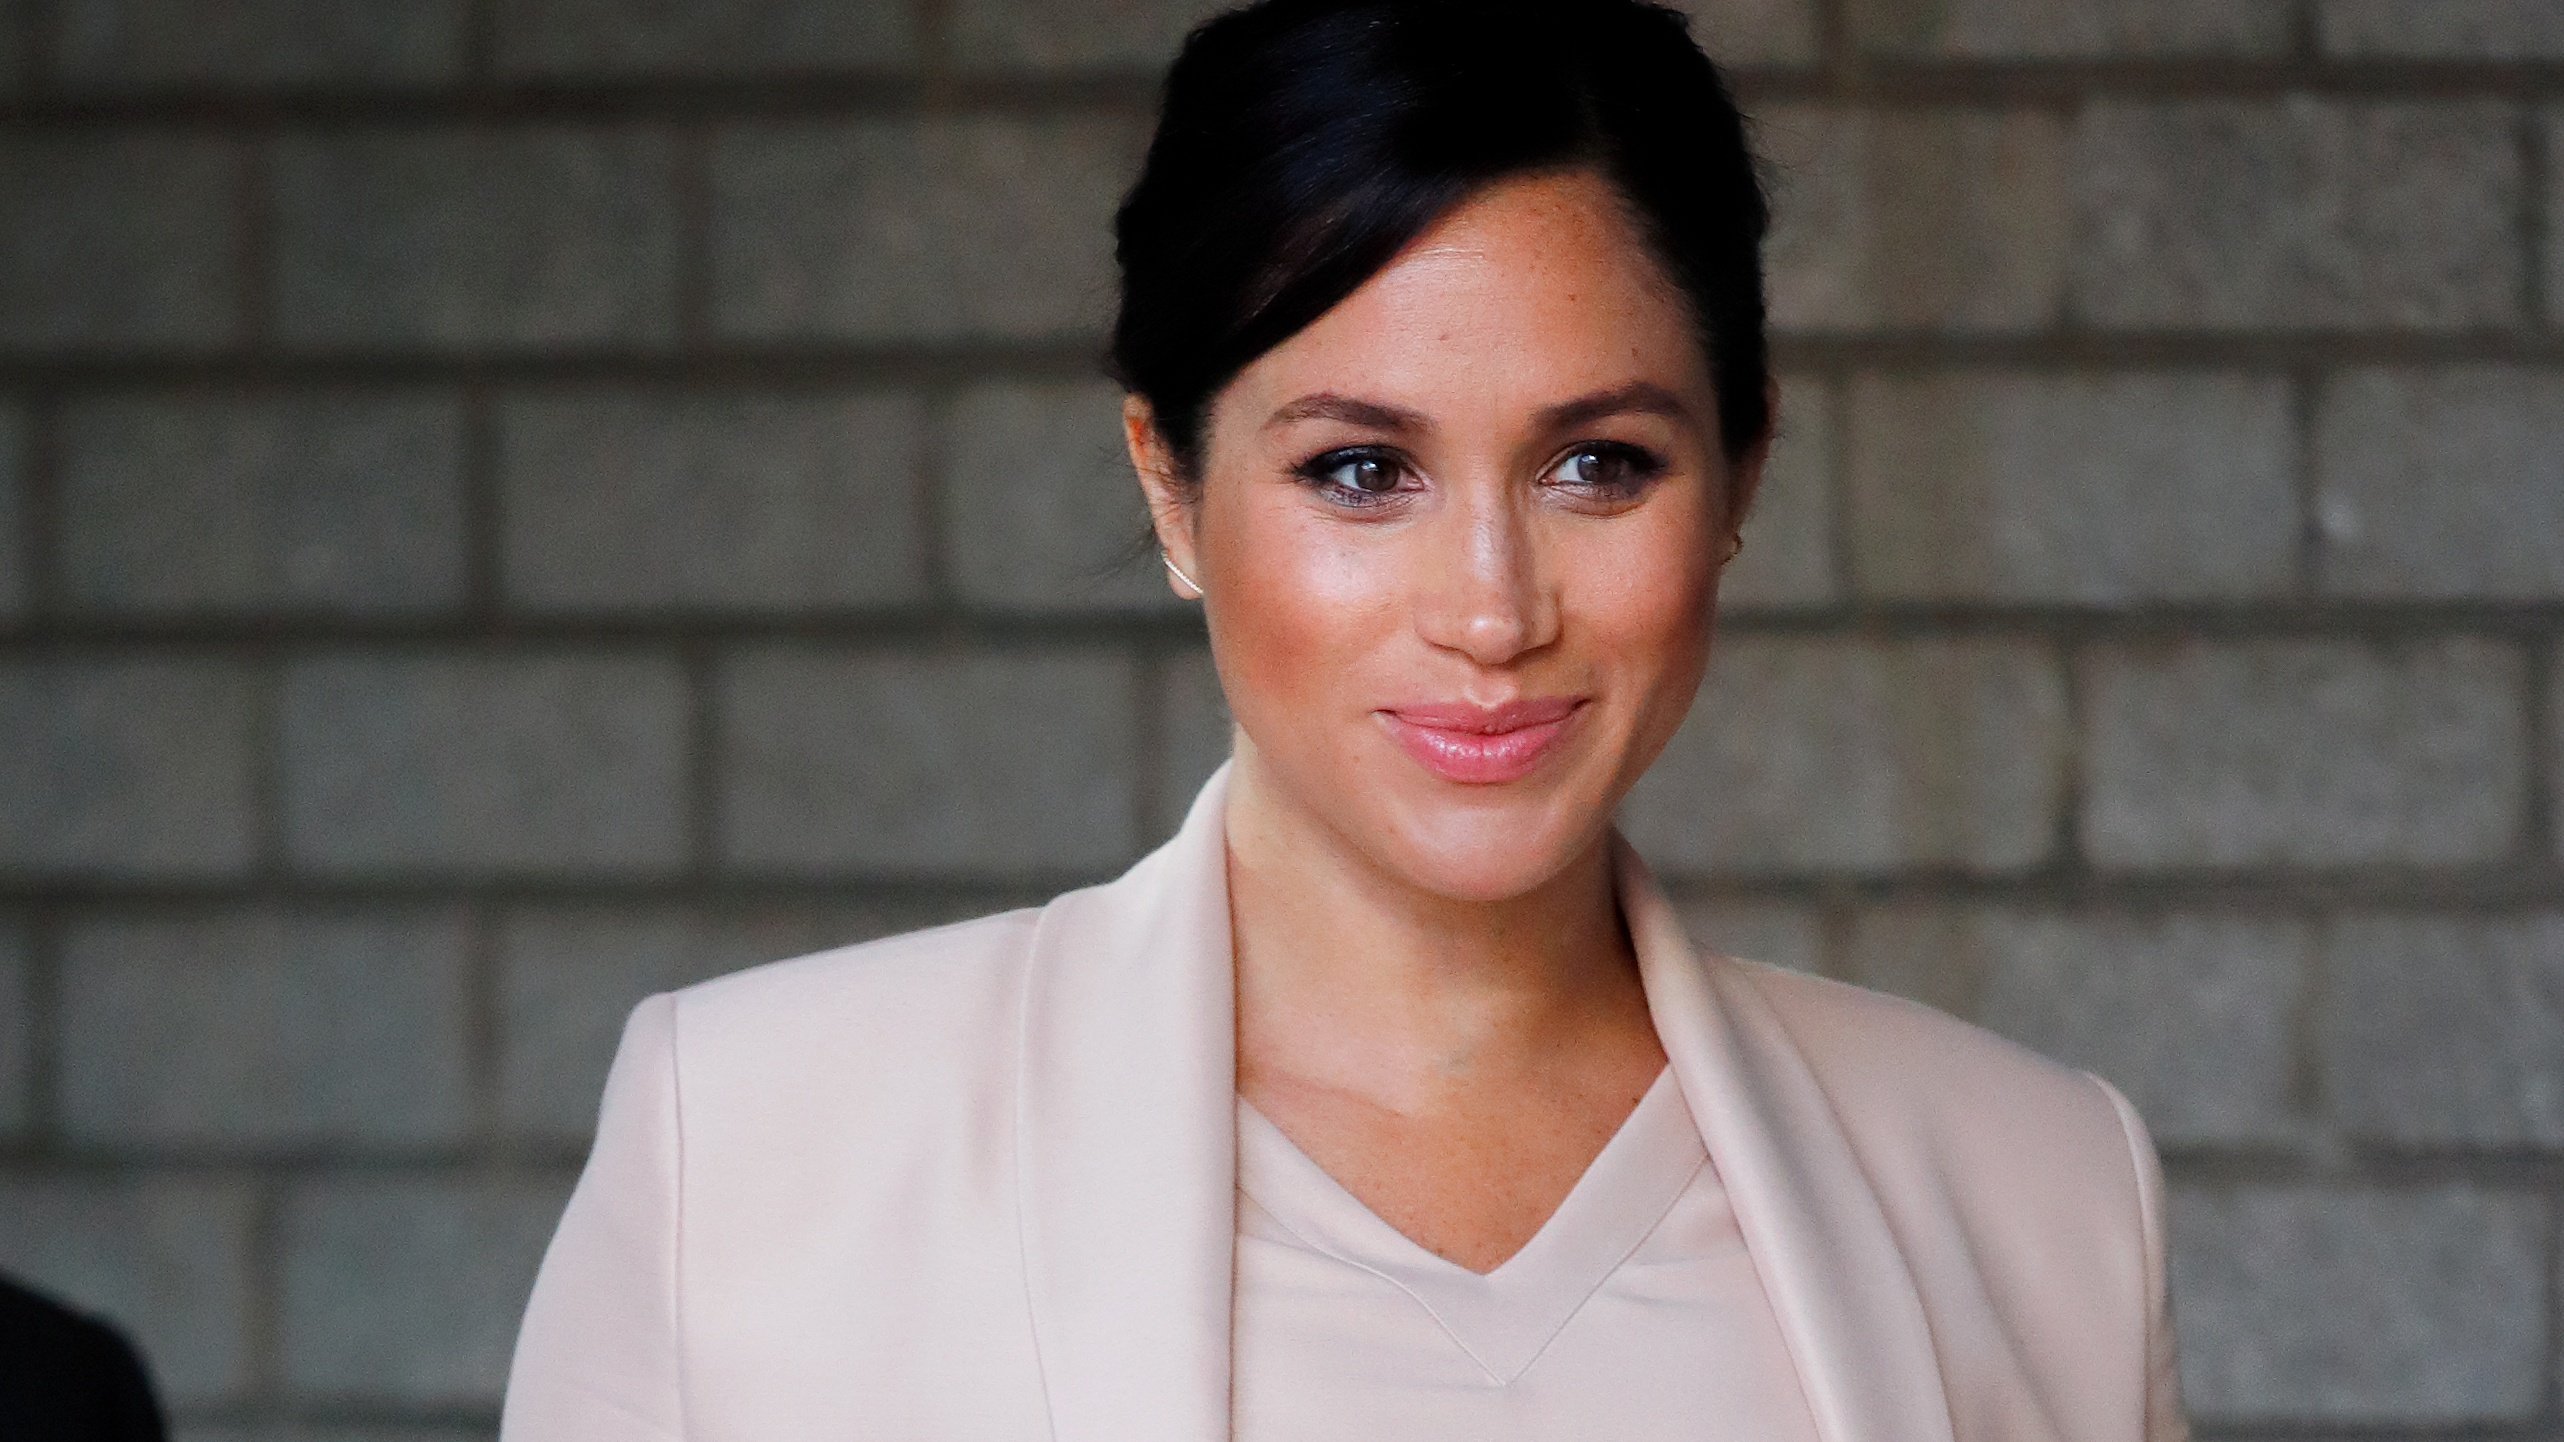 Meghan Markle Has A Family Heirloom For Her Future Daughter - Grazia